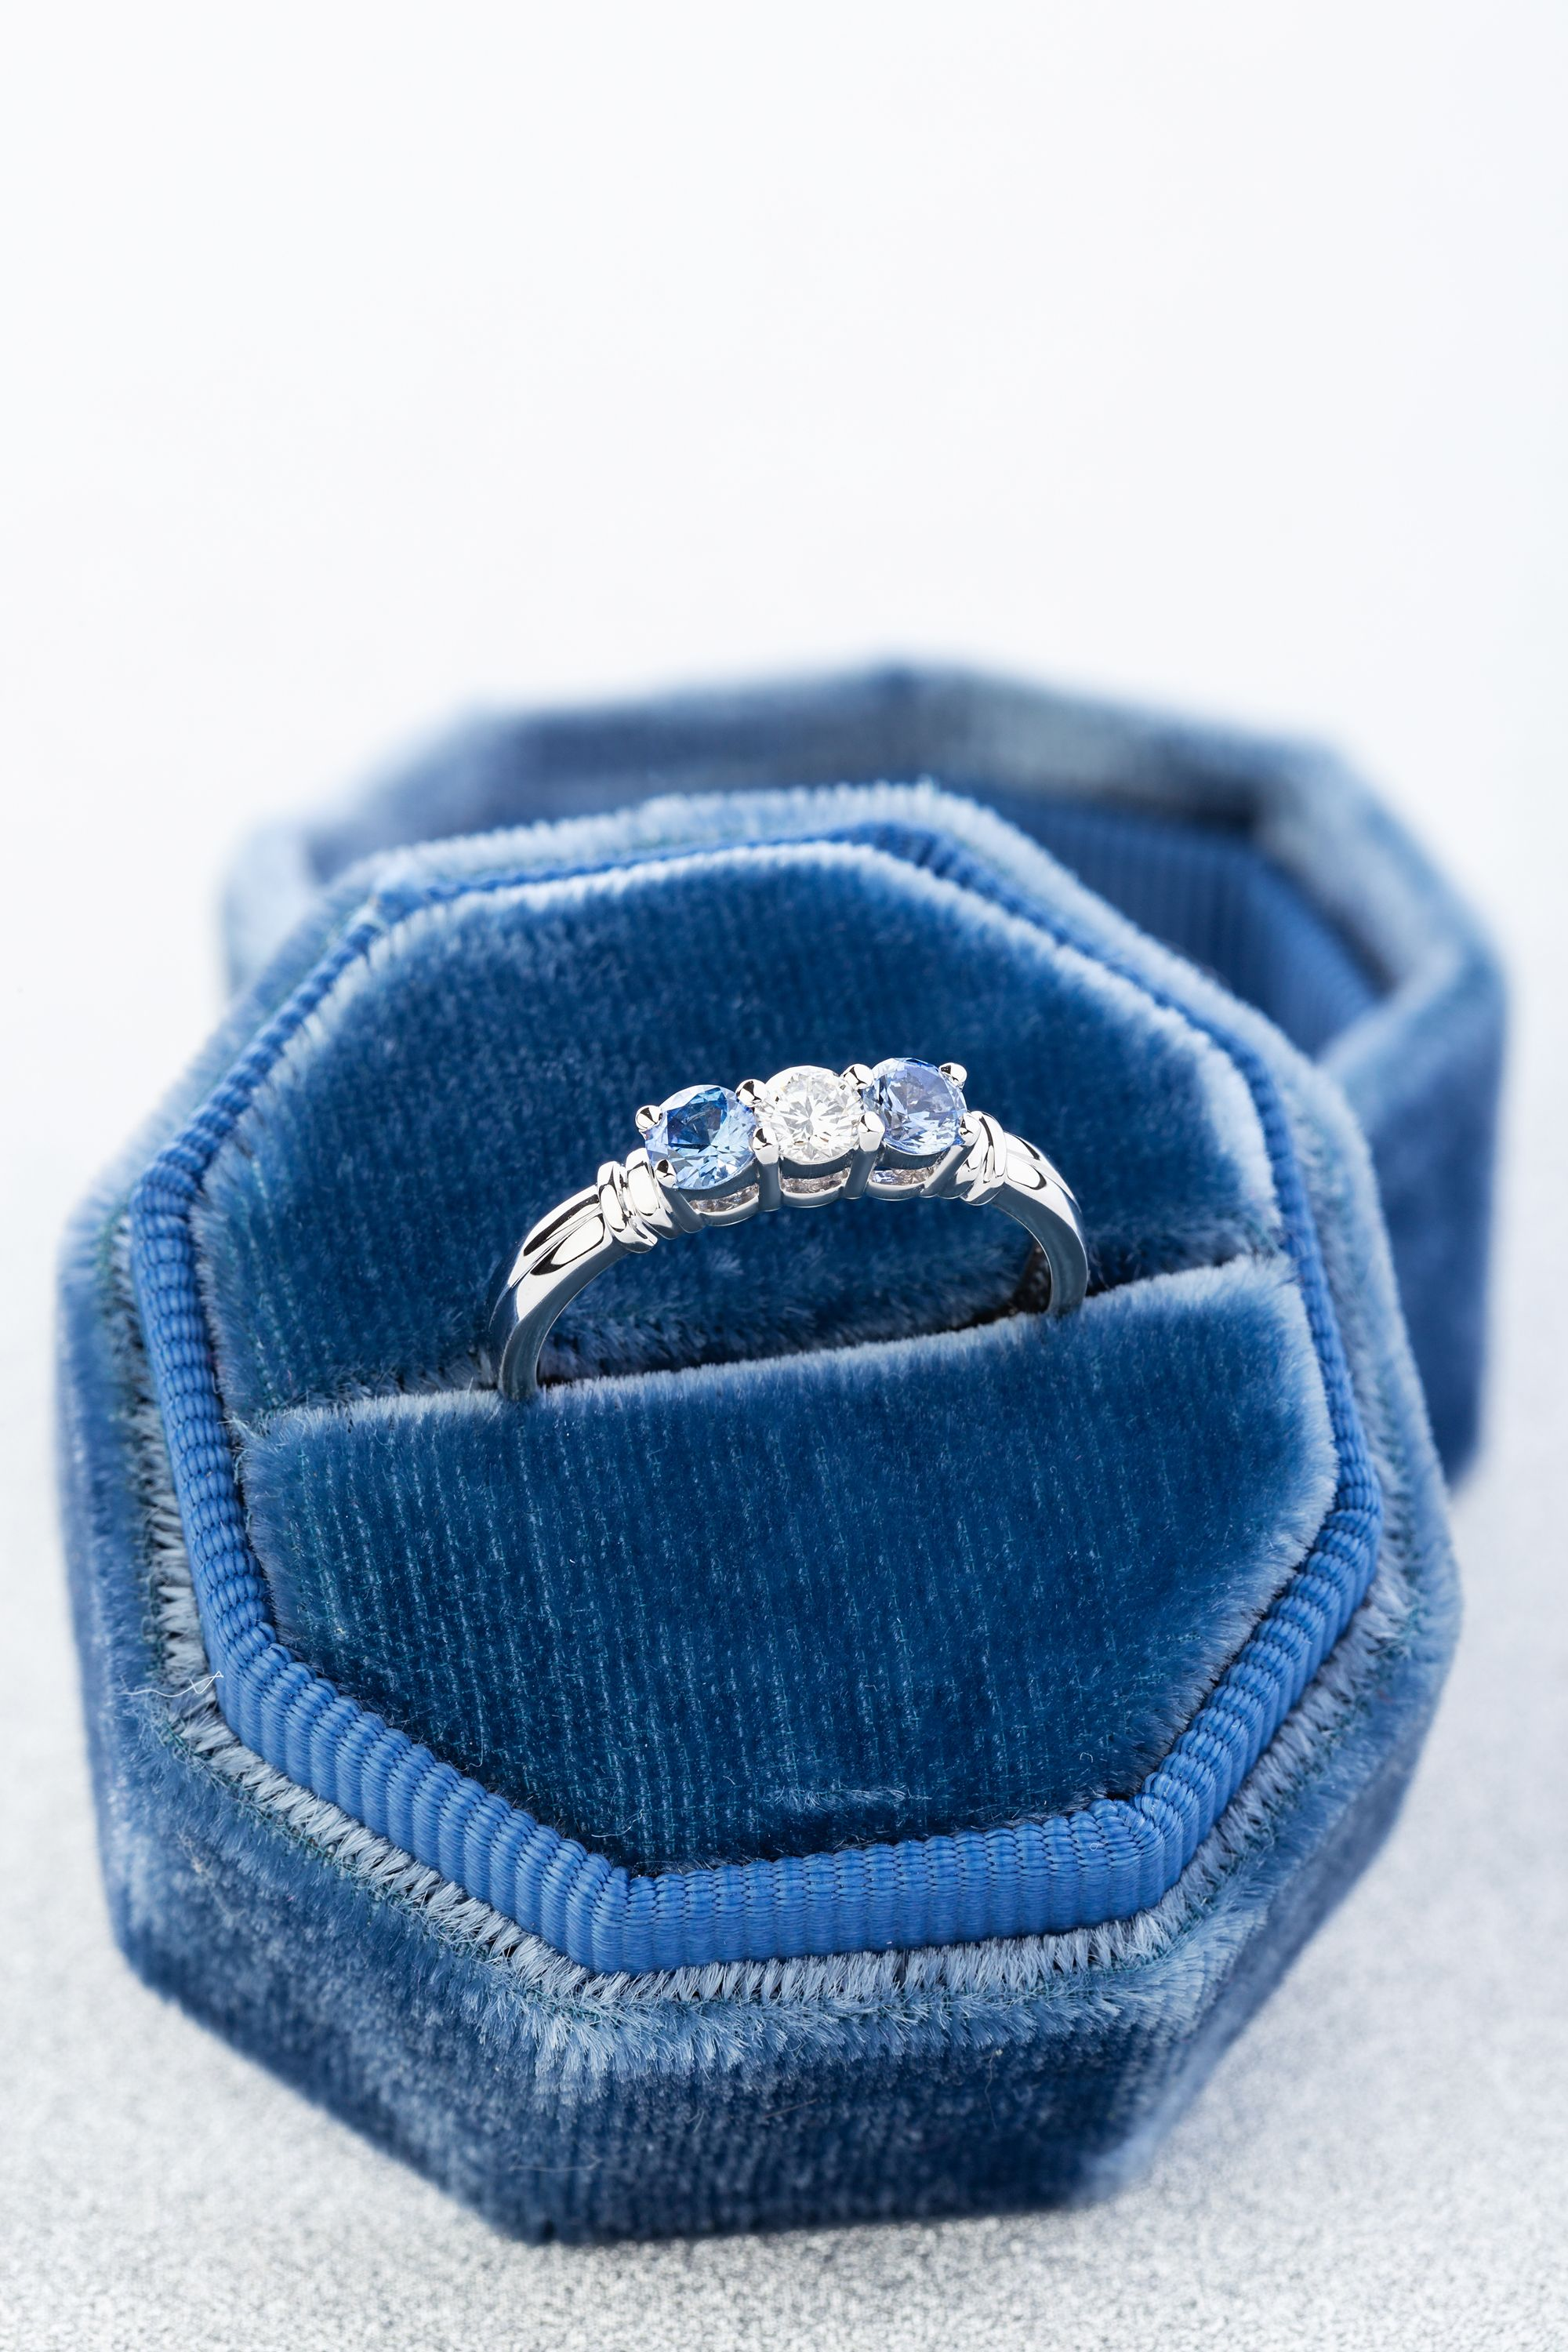 Ring for Women Womens rings Ring Birthstone Sapphire Ring For Her Ring Engagement Solitaire Ring